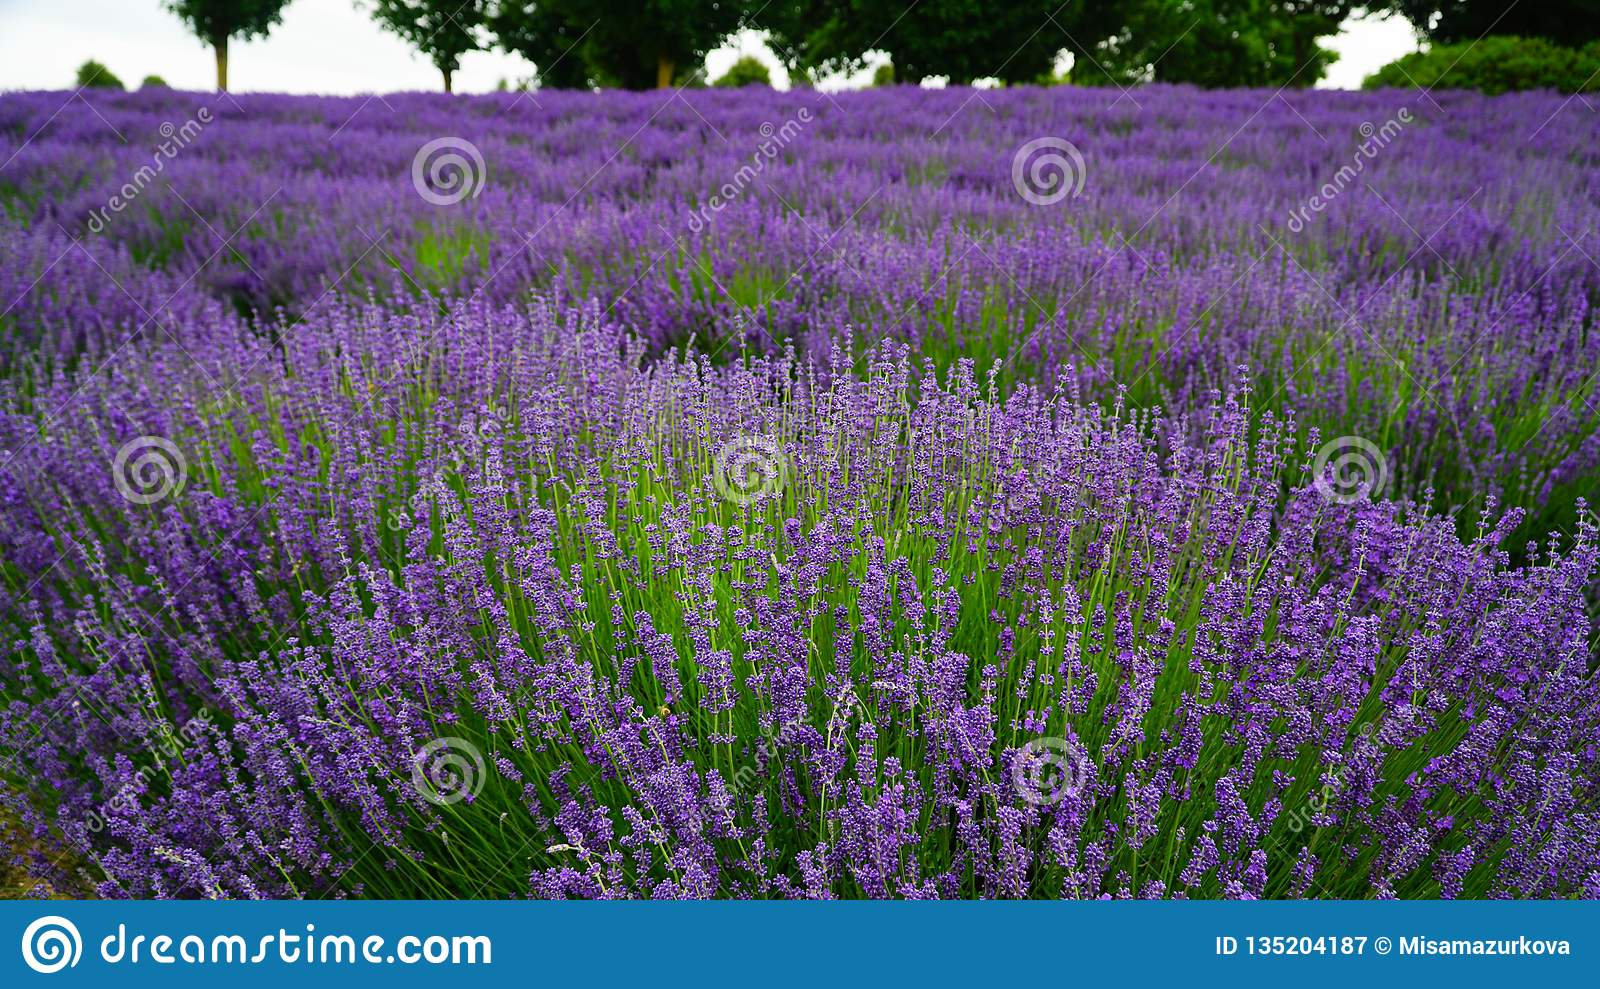 Blooming purple lavender plant in Lavender farm, New Zealand